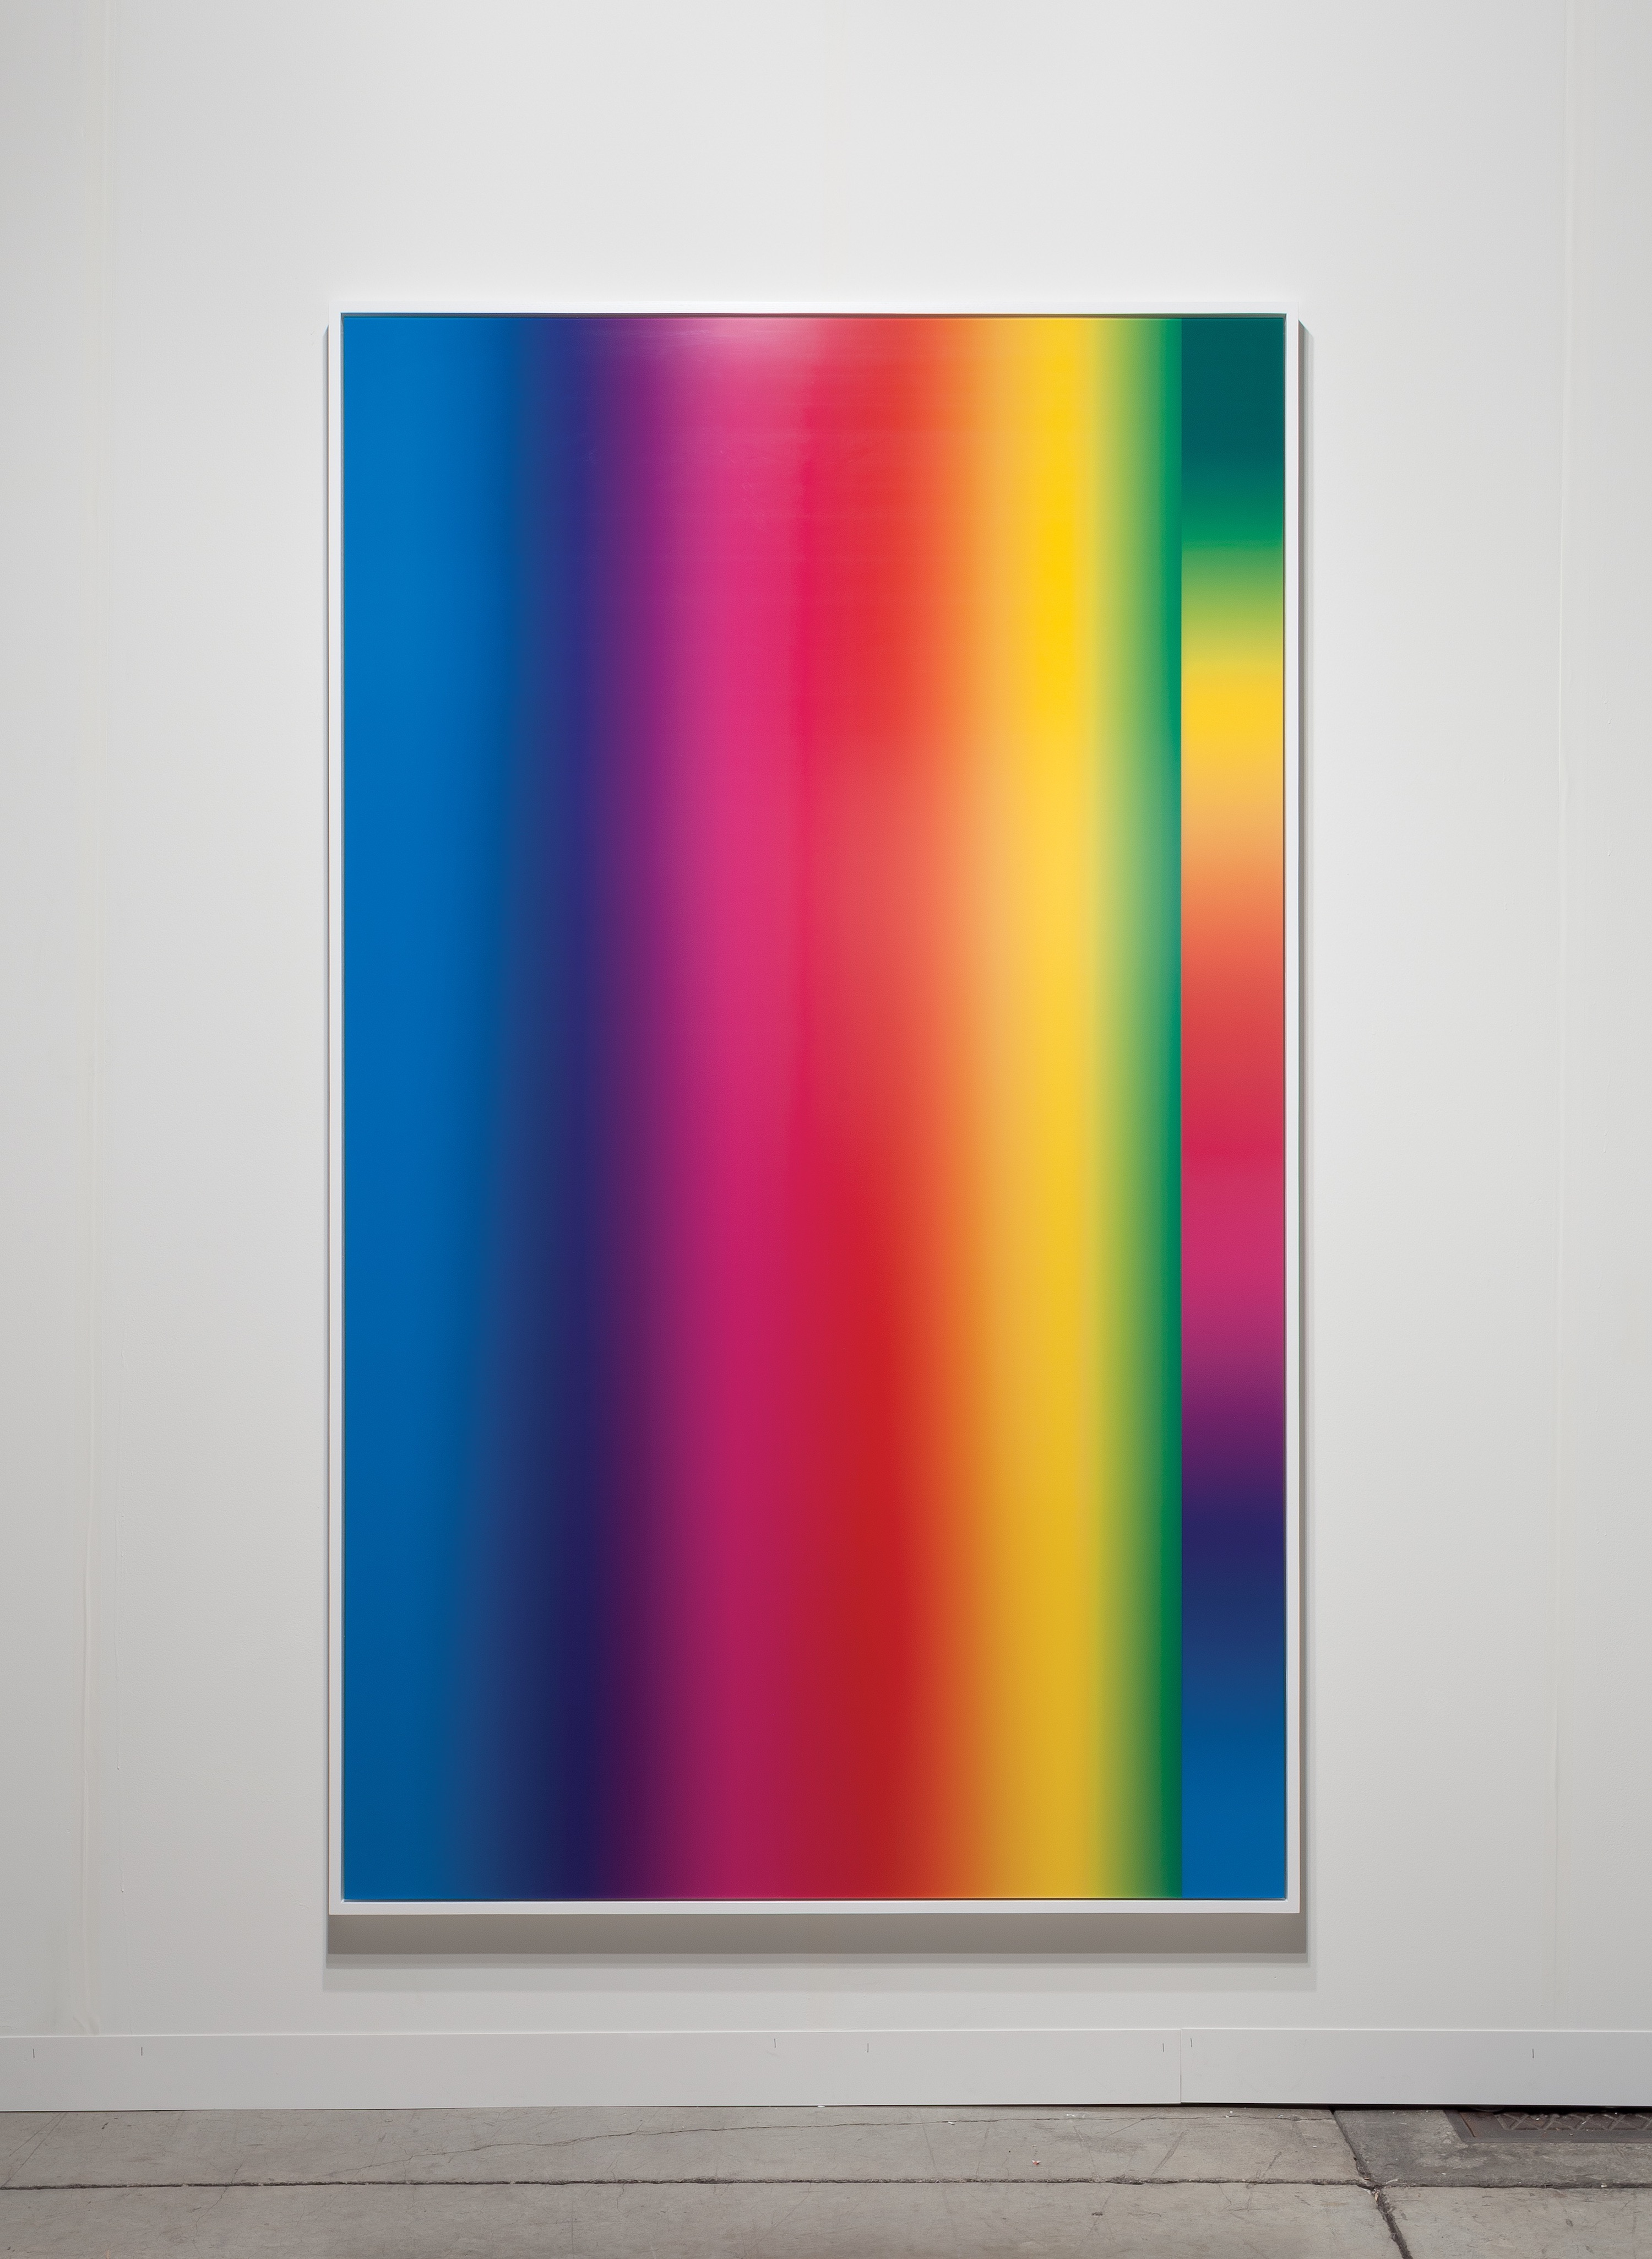 From the Photoshop Gradient Demonstration series, 2014 Cory Arcangel colour field glitch post internet stripes vibrant rainbow